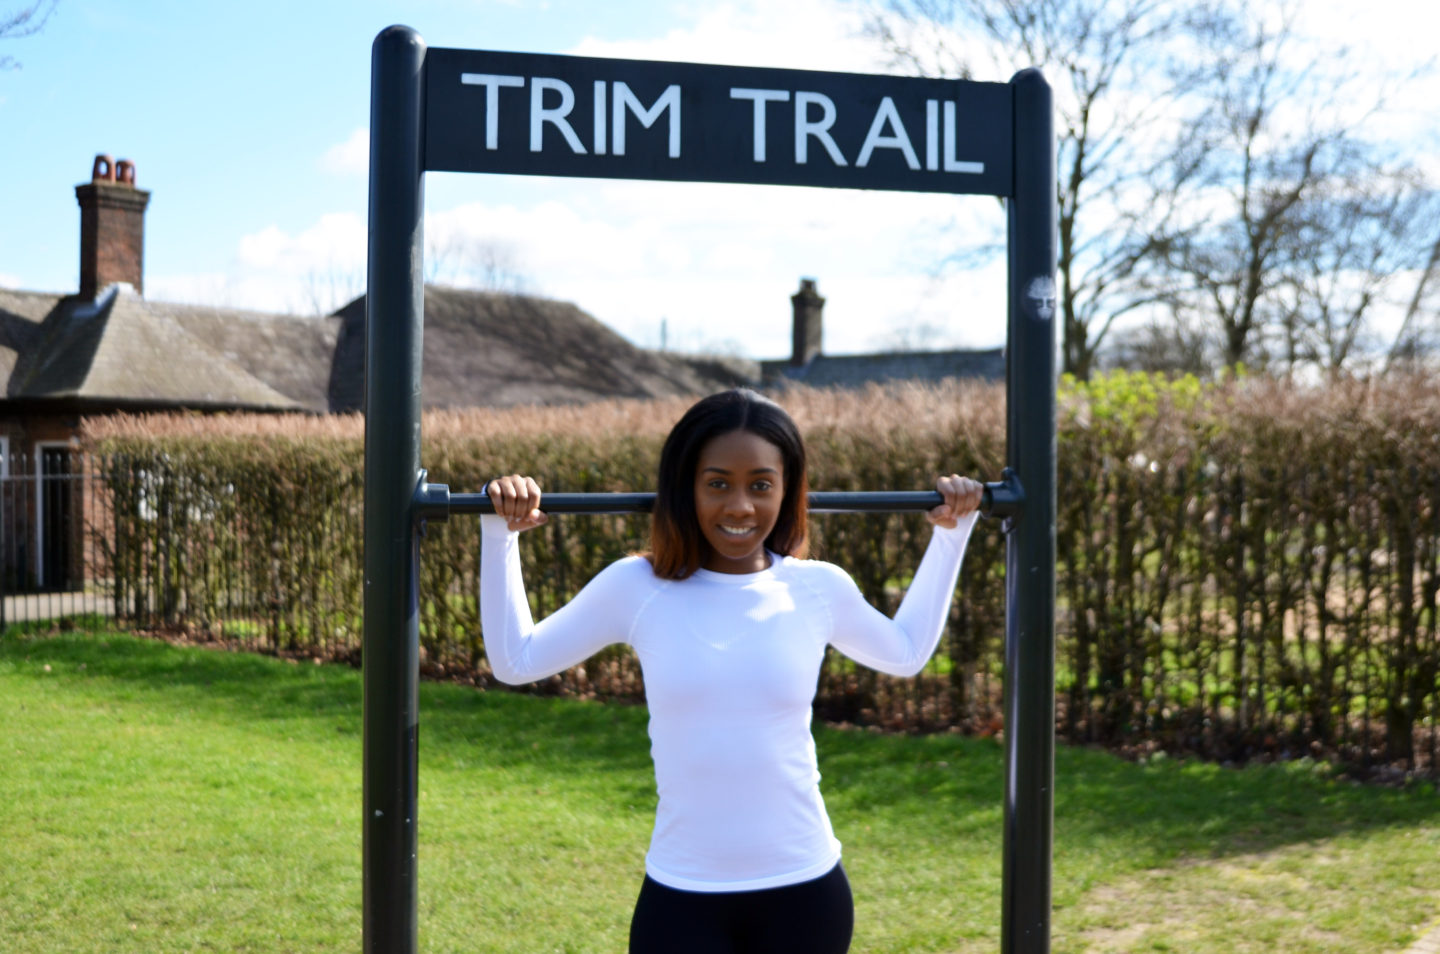 WORKING OUT AT TRIM TRAIL, PRIMROSE HILL